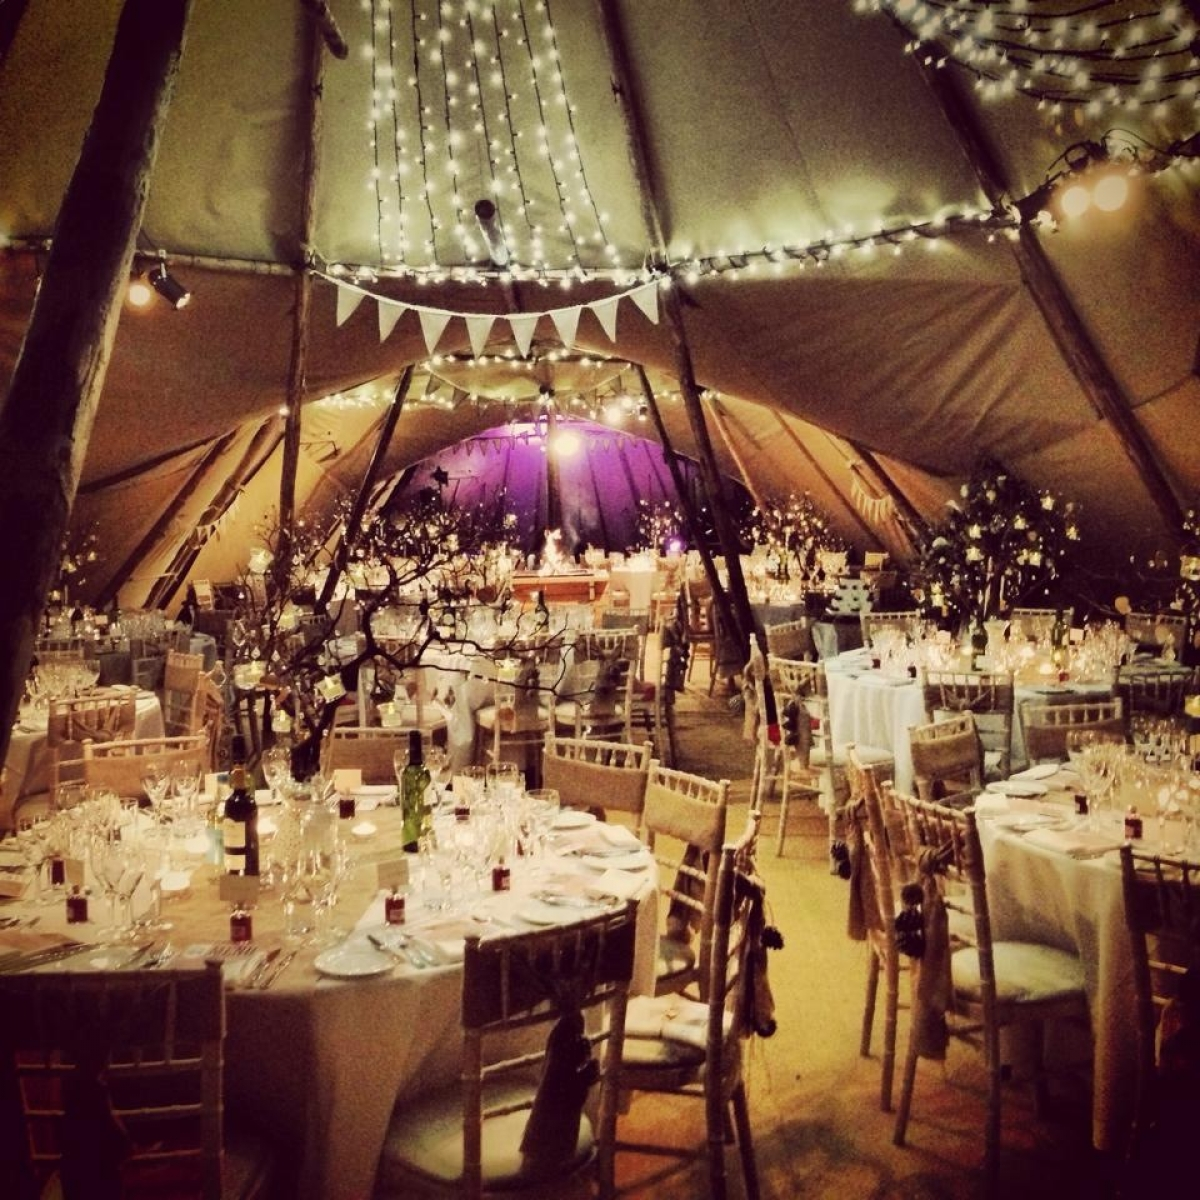 & Winter tipi weddings with World Inspired Tents